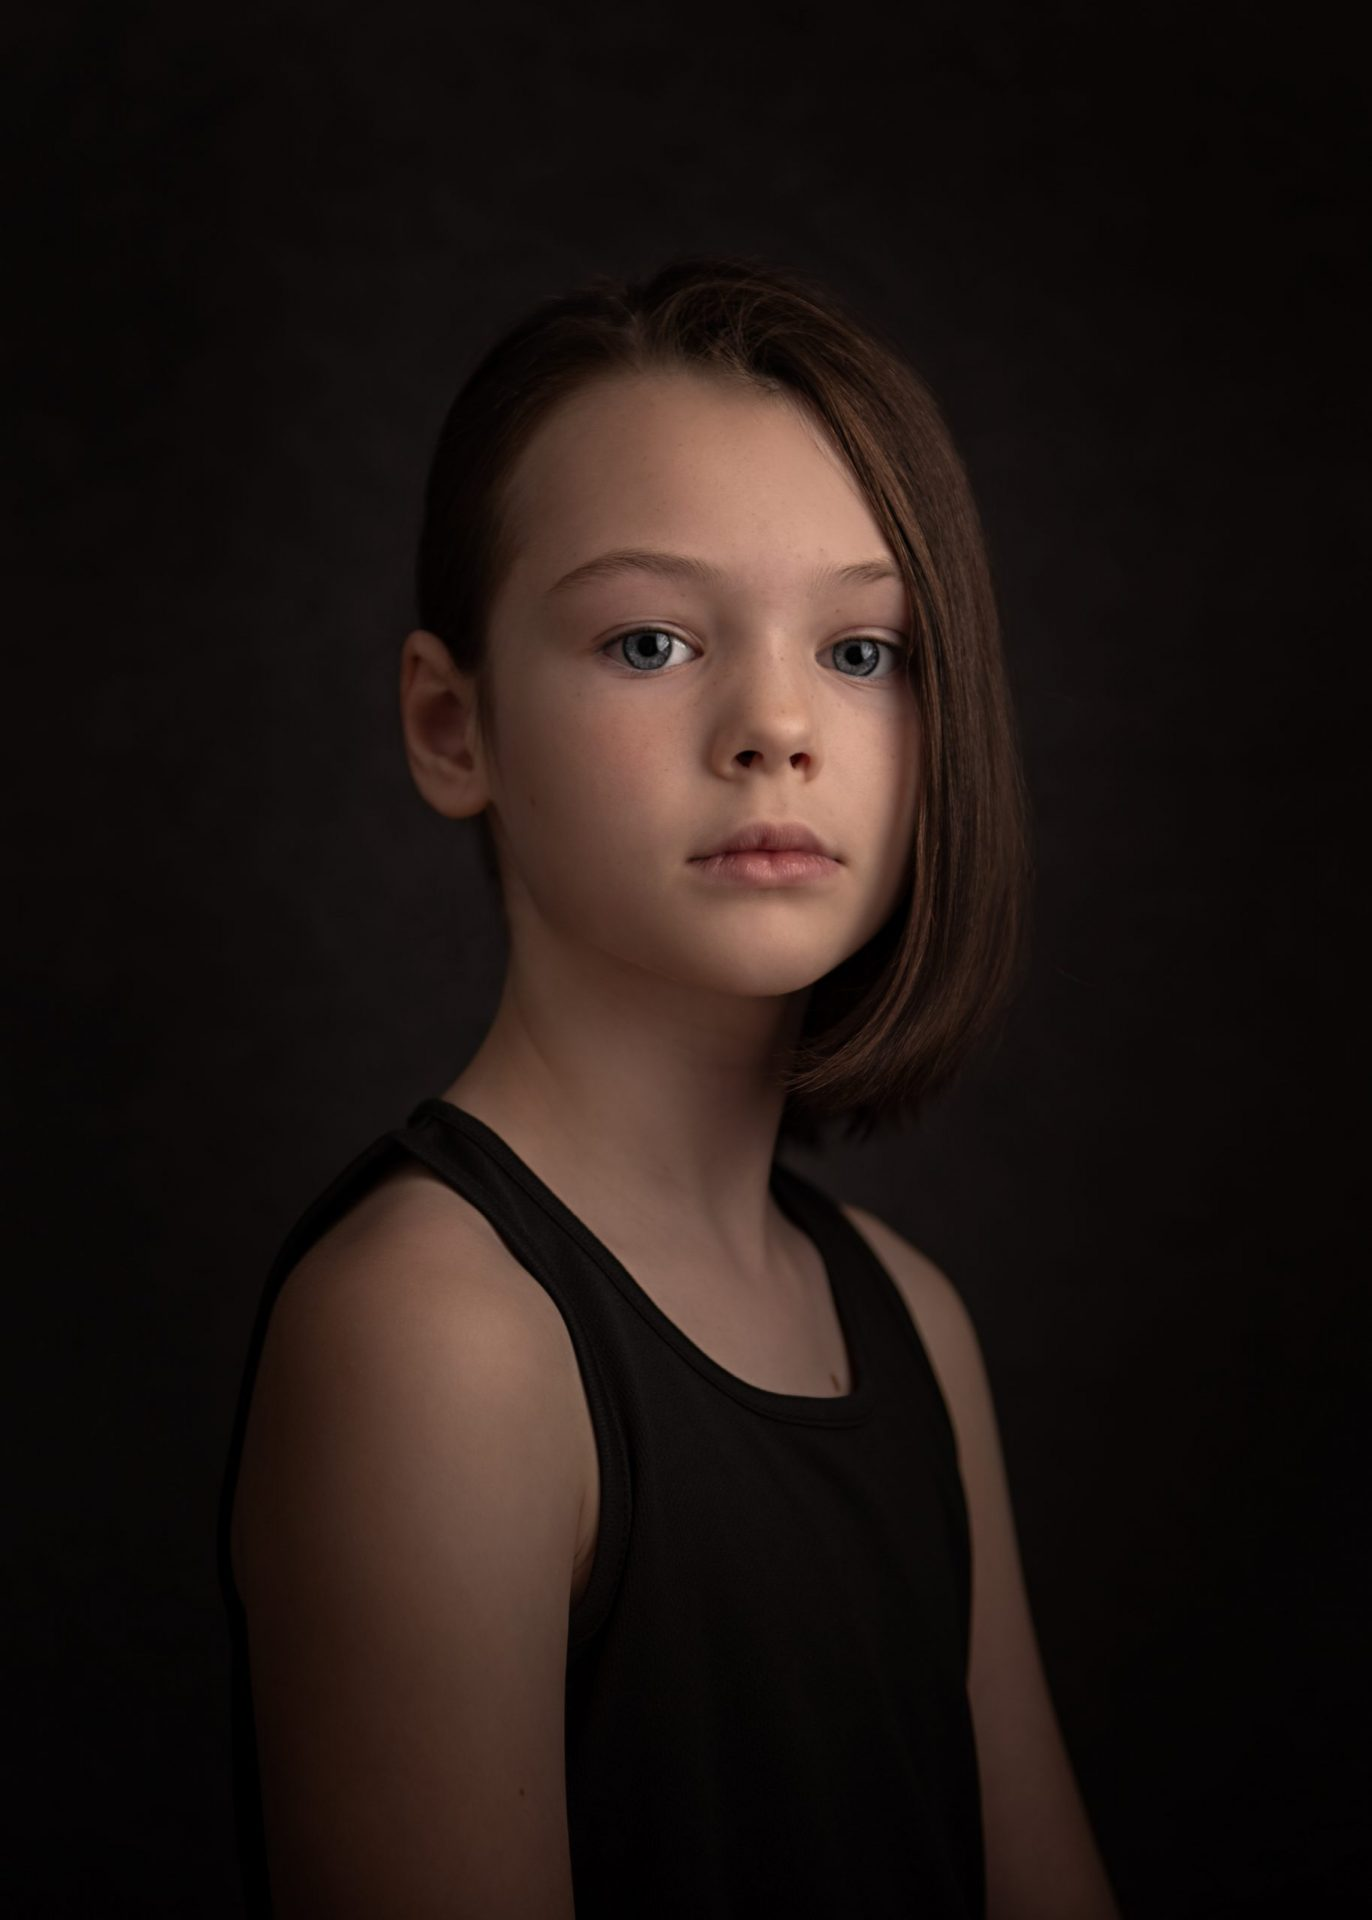 studio portrait of a girl in a black vest and undercut hair staring seriously at the camera